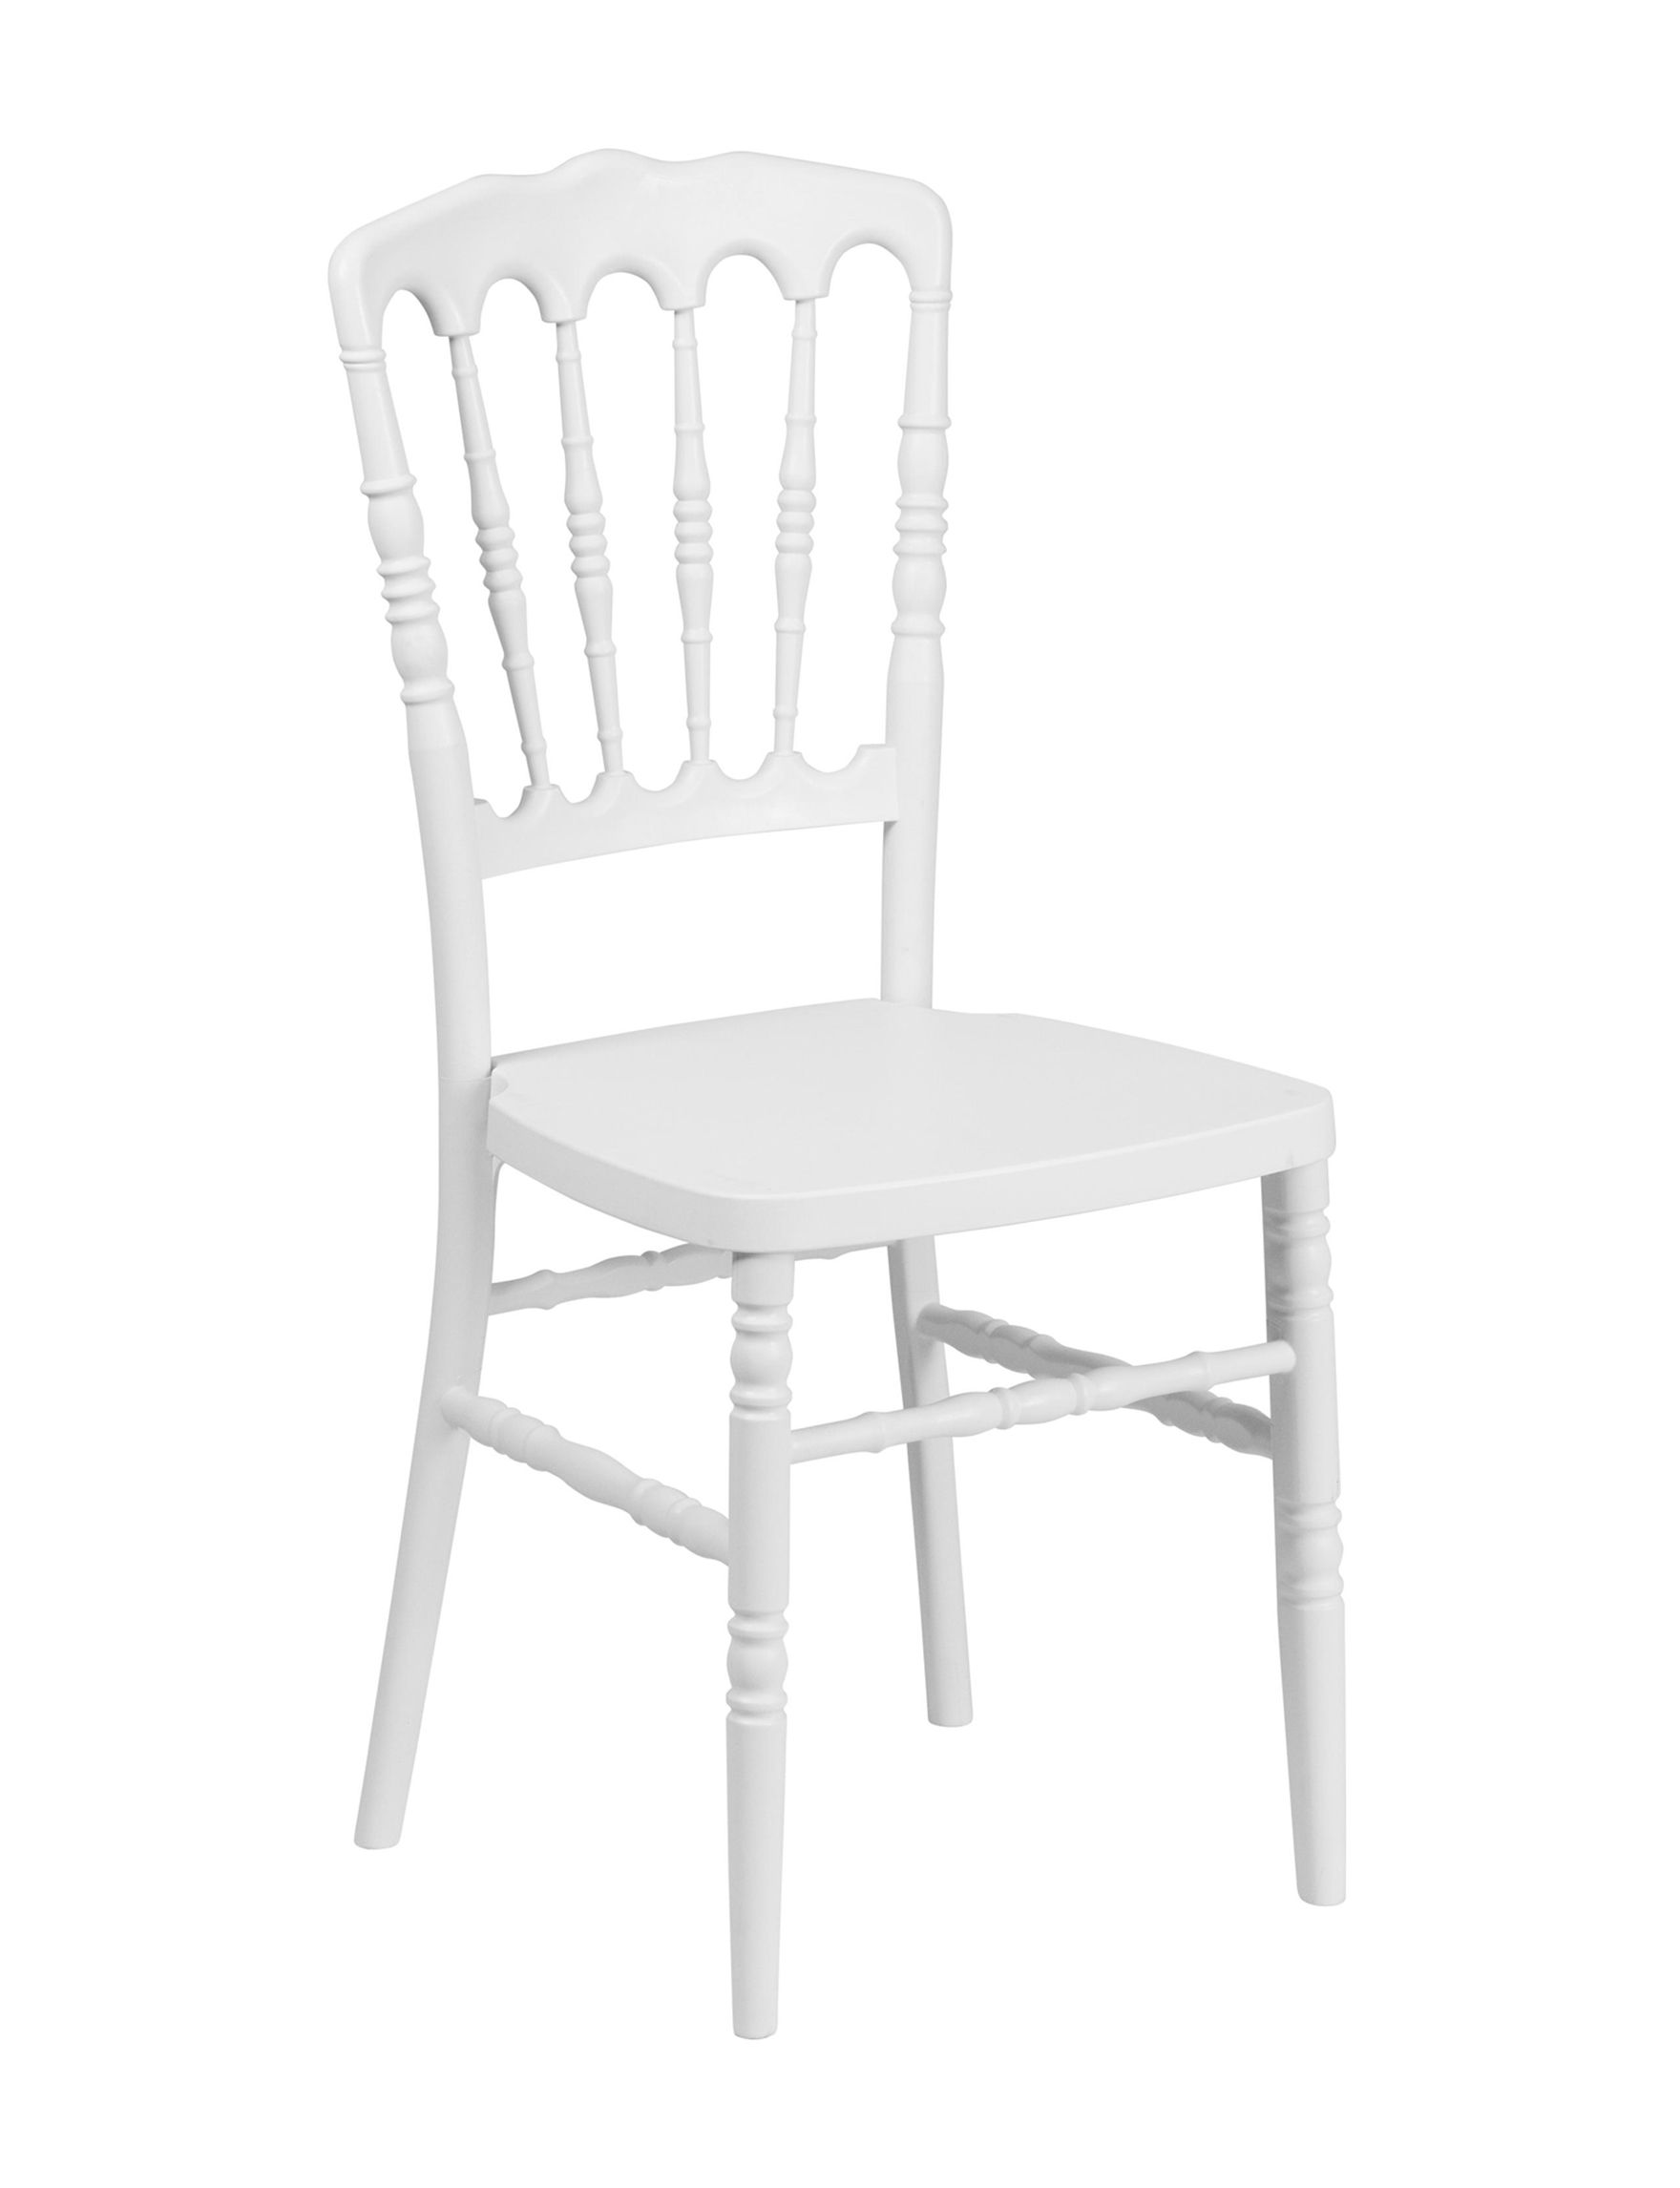 Flash Furniture White Accent Chairs Dining Chairs Kitchen & Dining Furniture Living Room Furniture